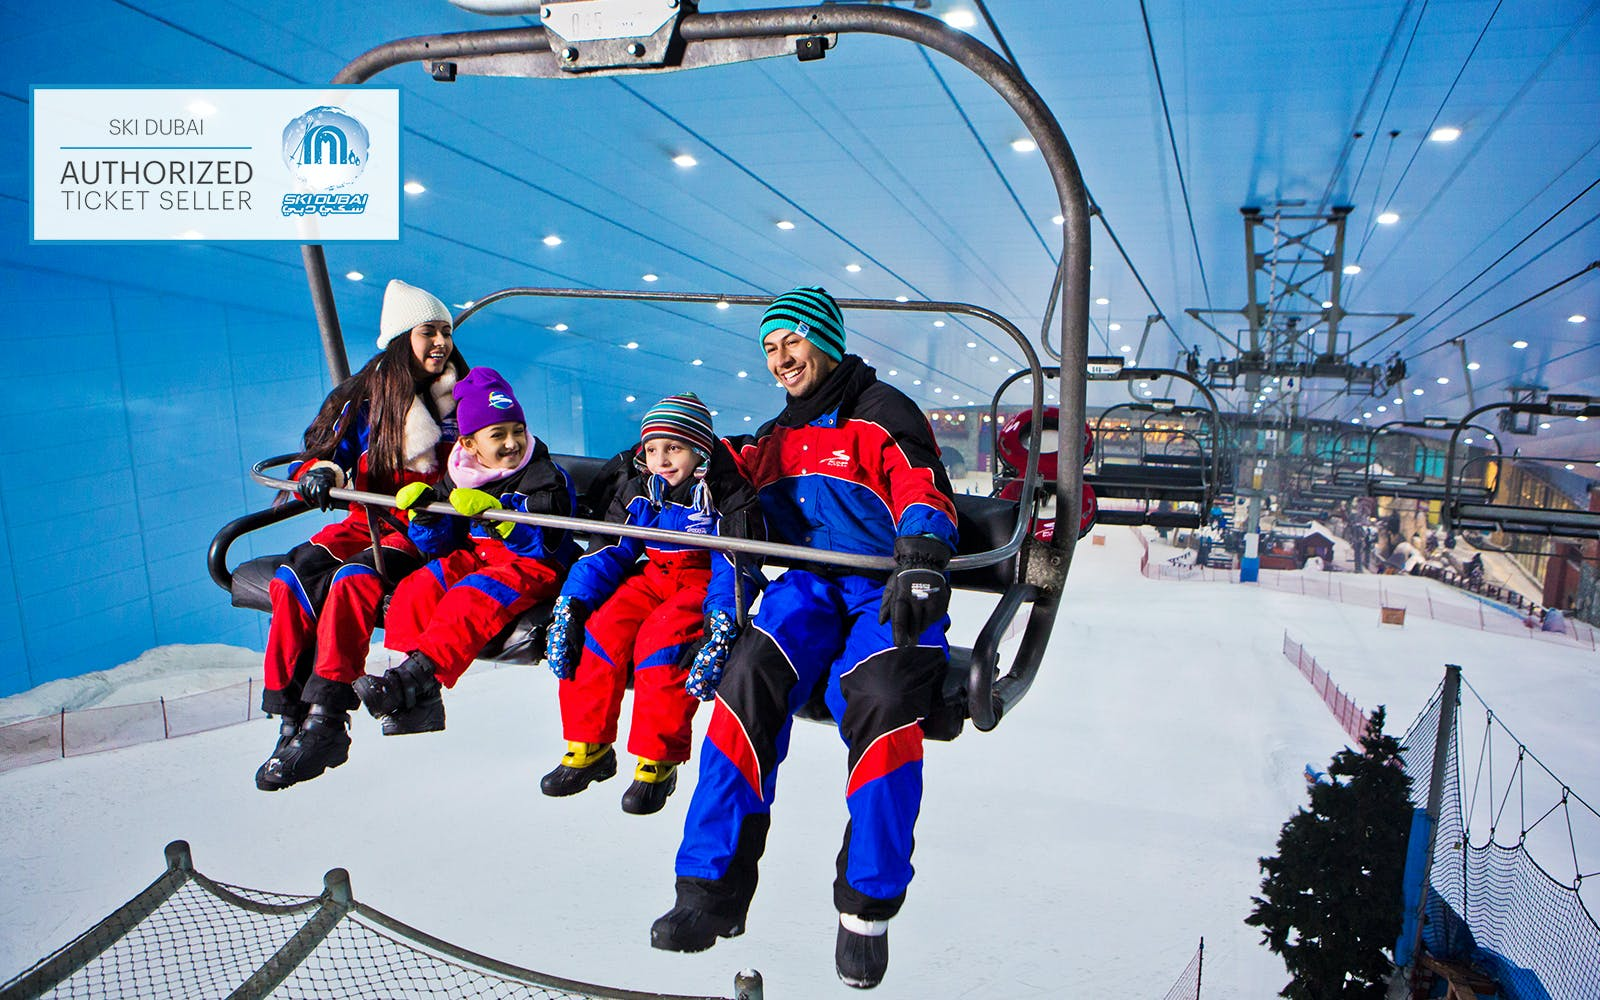 Ski Dubai: Polar Pass - Access to Park & Rides